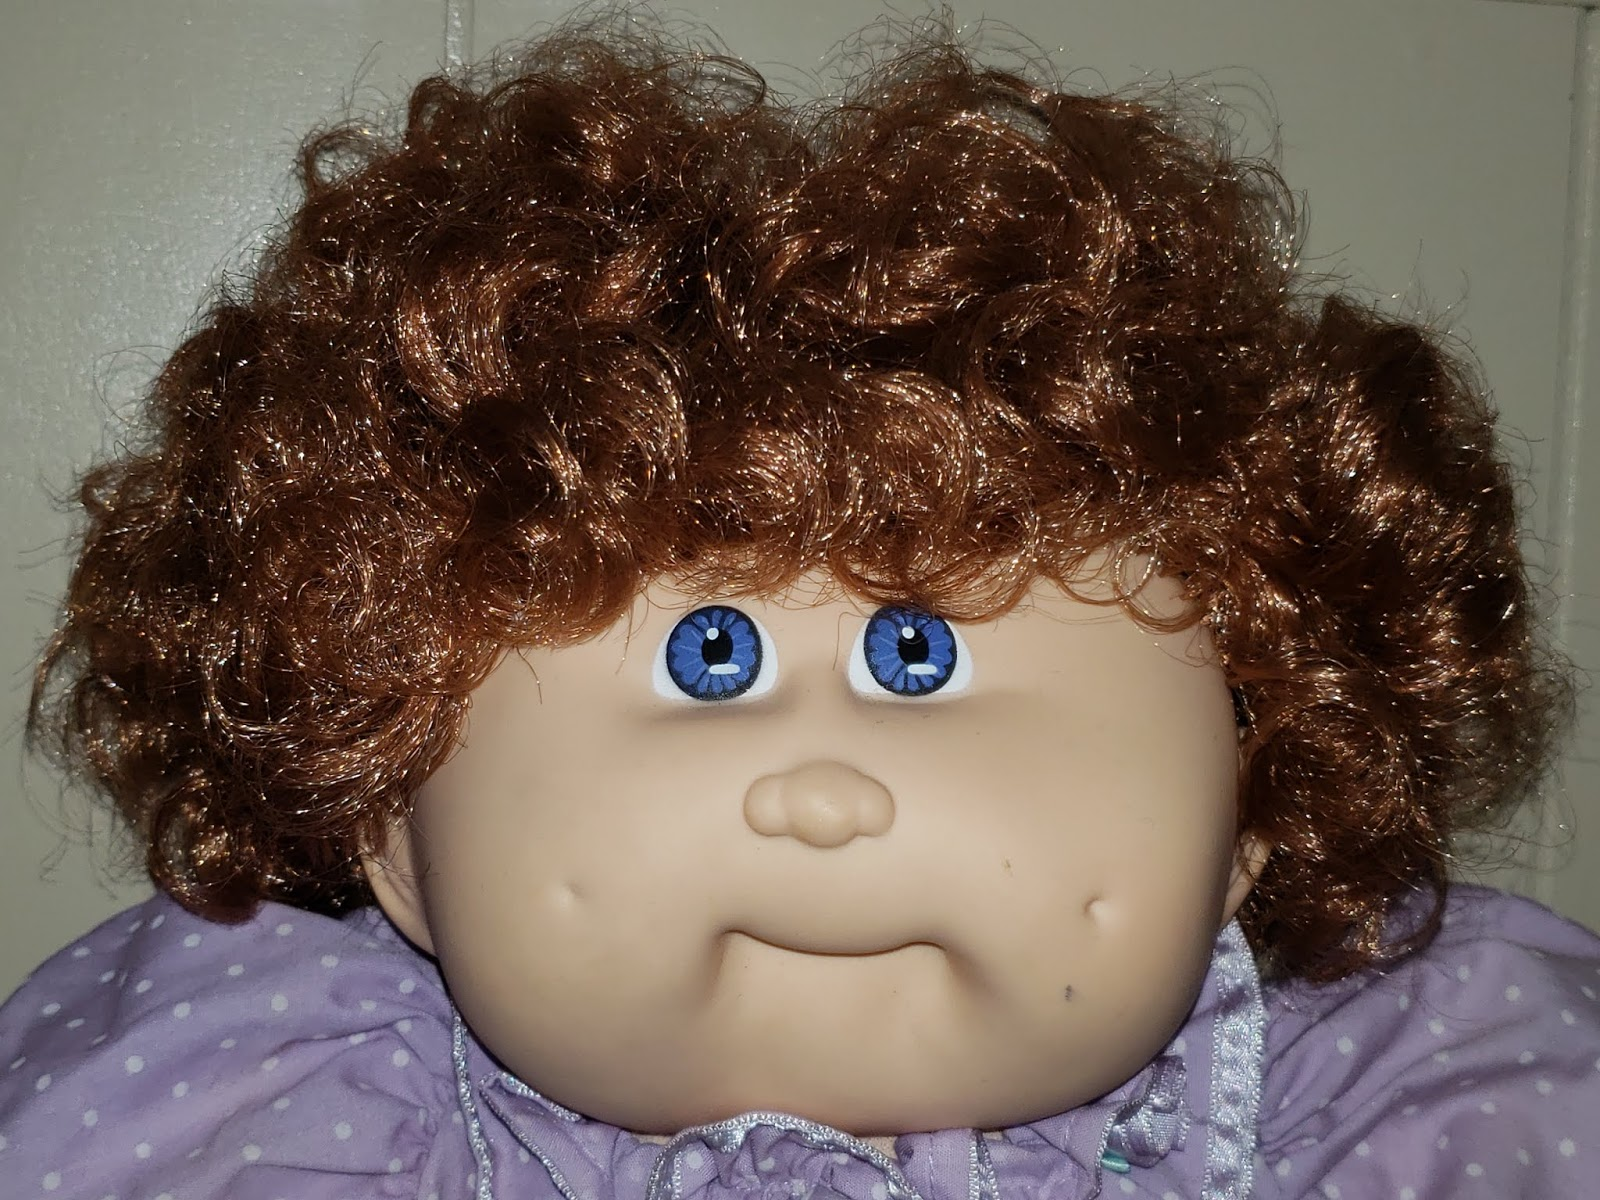 Confessions of a Dolly Lover: Under the cabbage leaf: on Cabbage Patch Kids